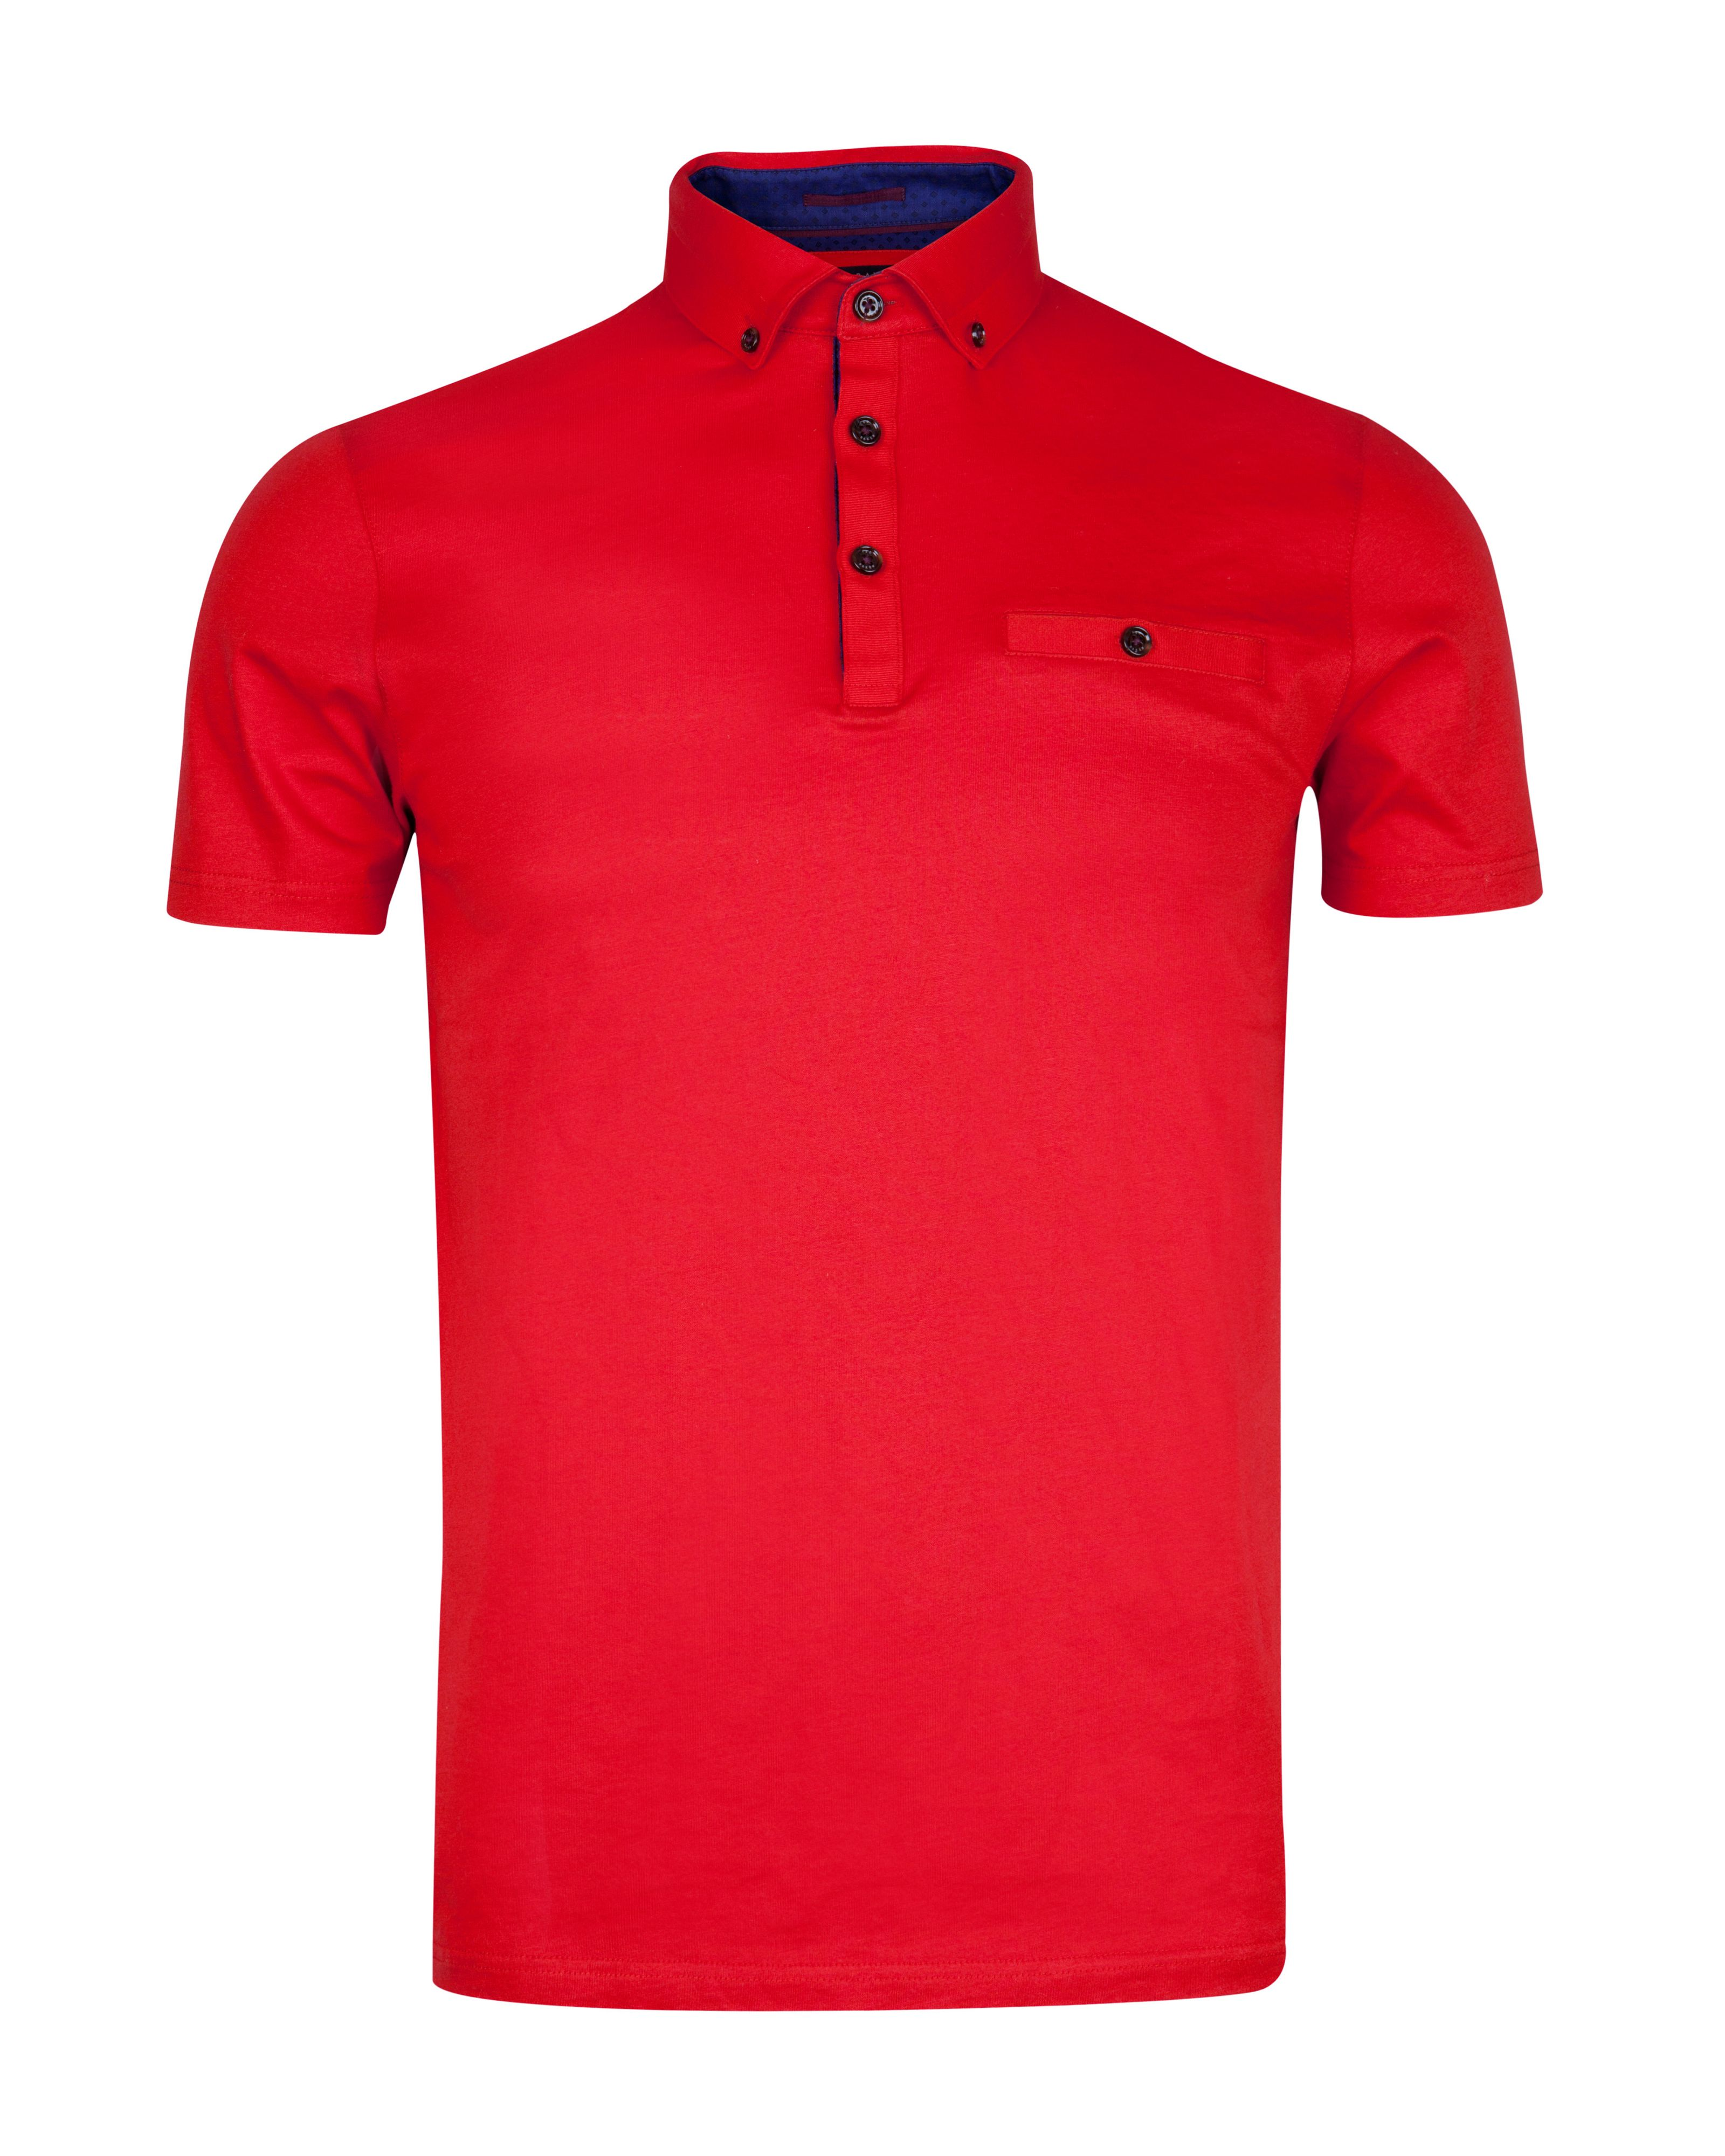 Grainyo jersey cotton polo shirt